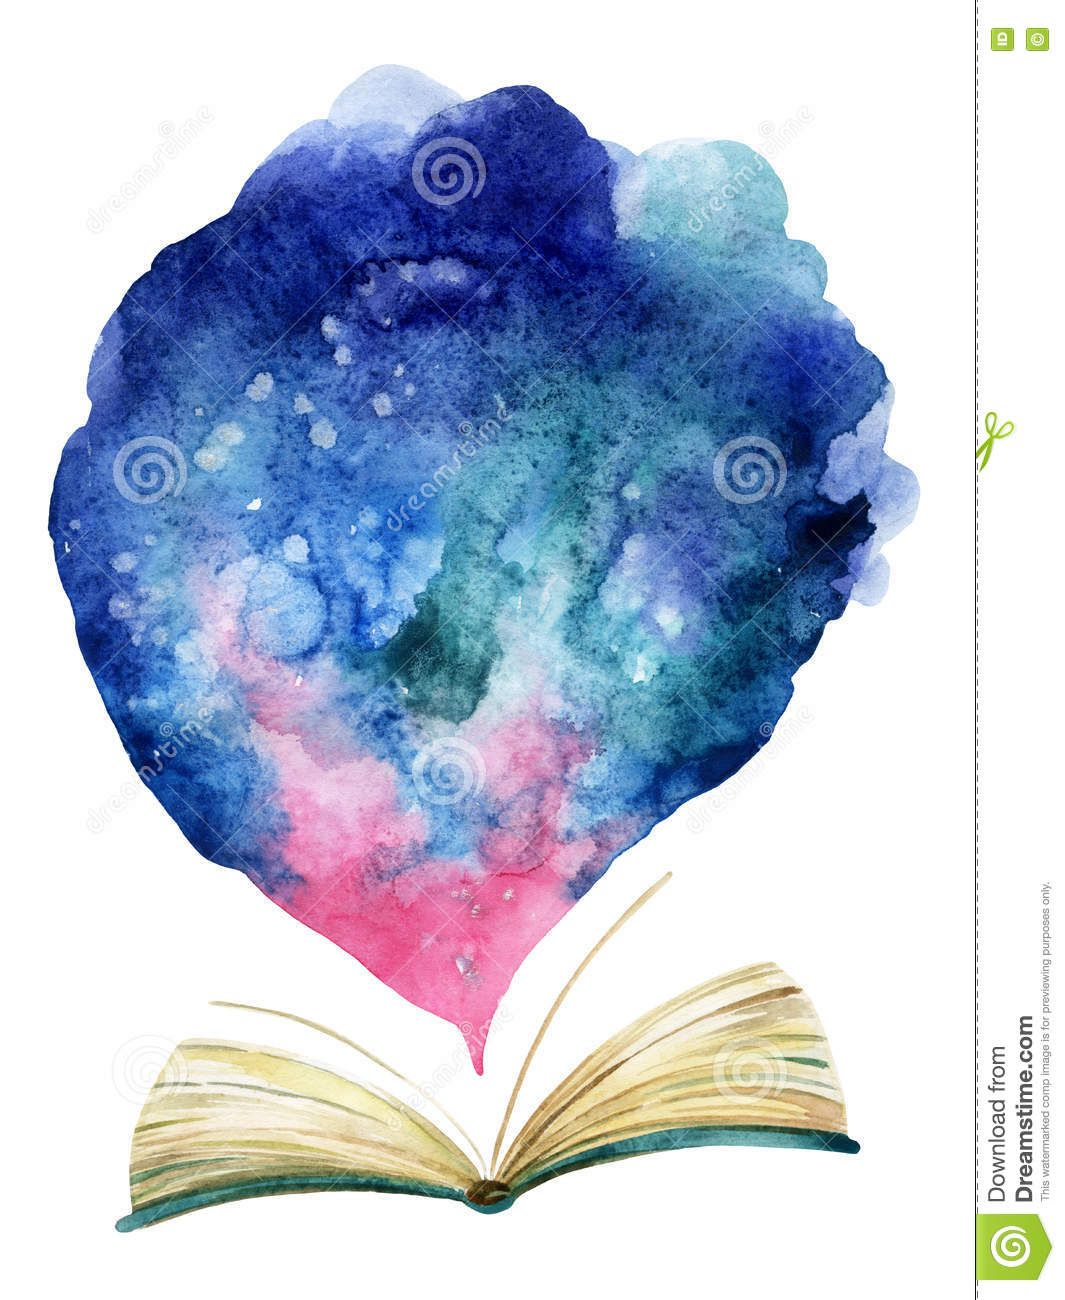 Watercolor Open Book With Magic Cloud Stock Illustration Illustration Of Description Poster 74608325 Open Book Drawing Stock Illustration Illustration